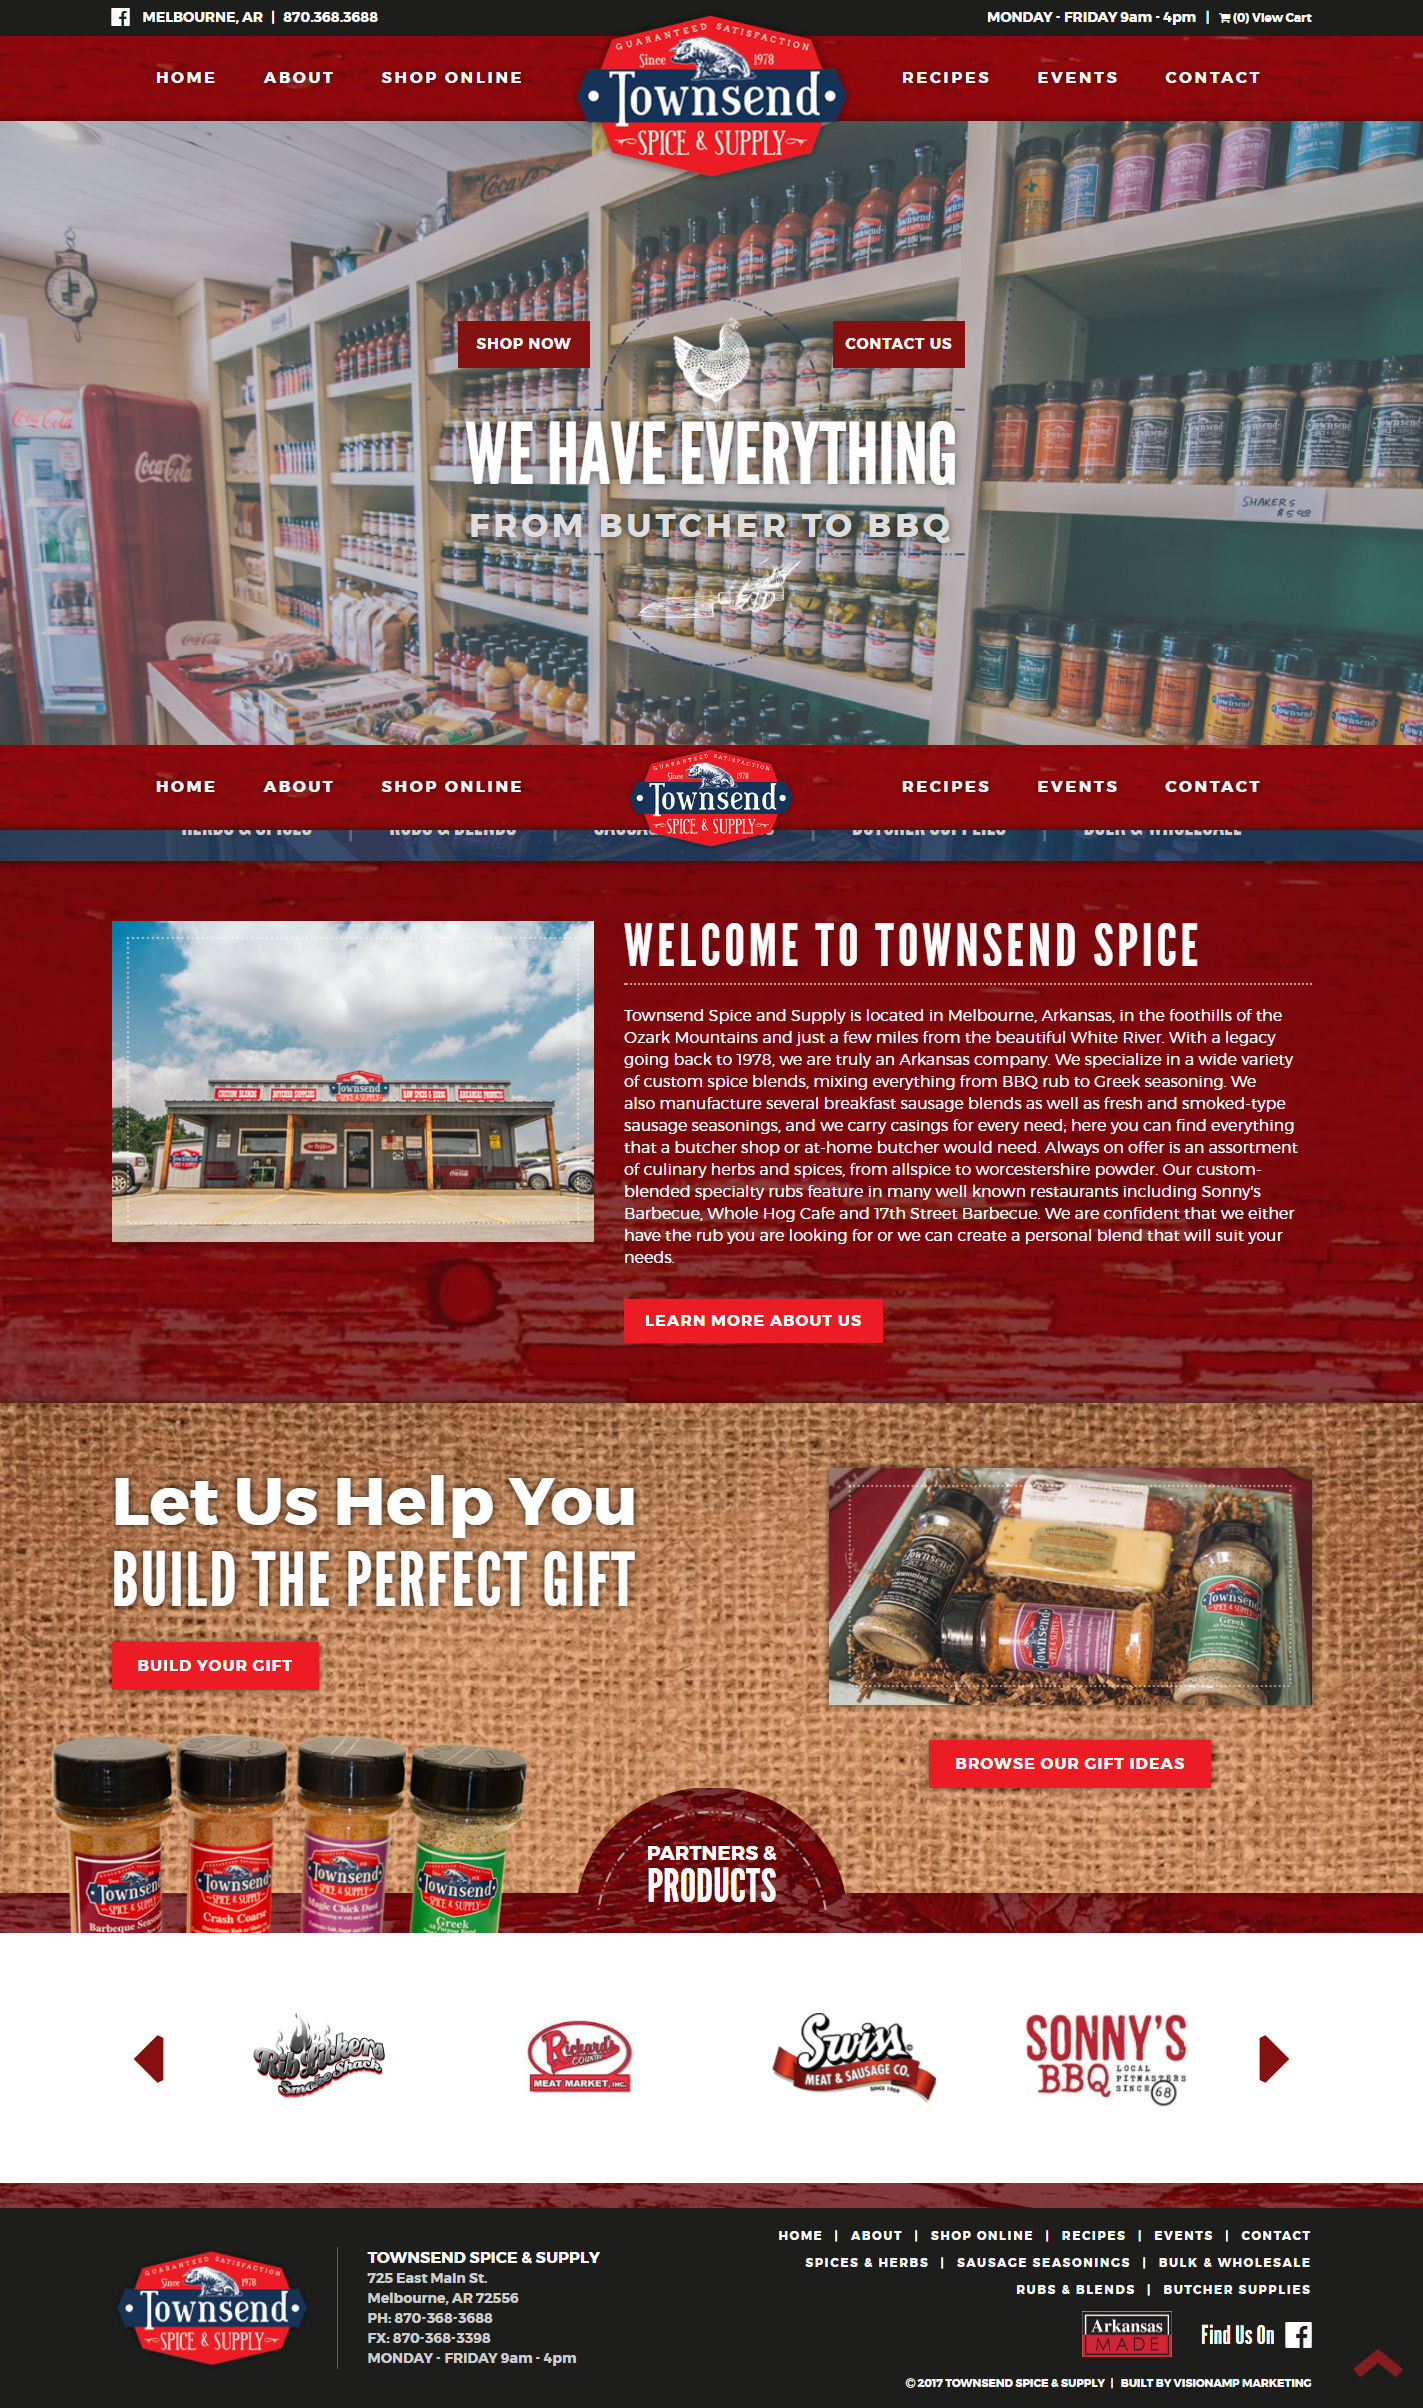 Townsend Spice and Supply Full Web Design Image